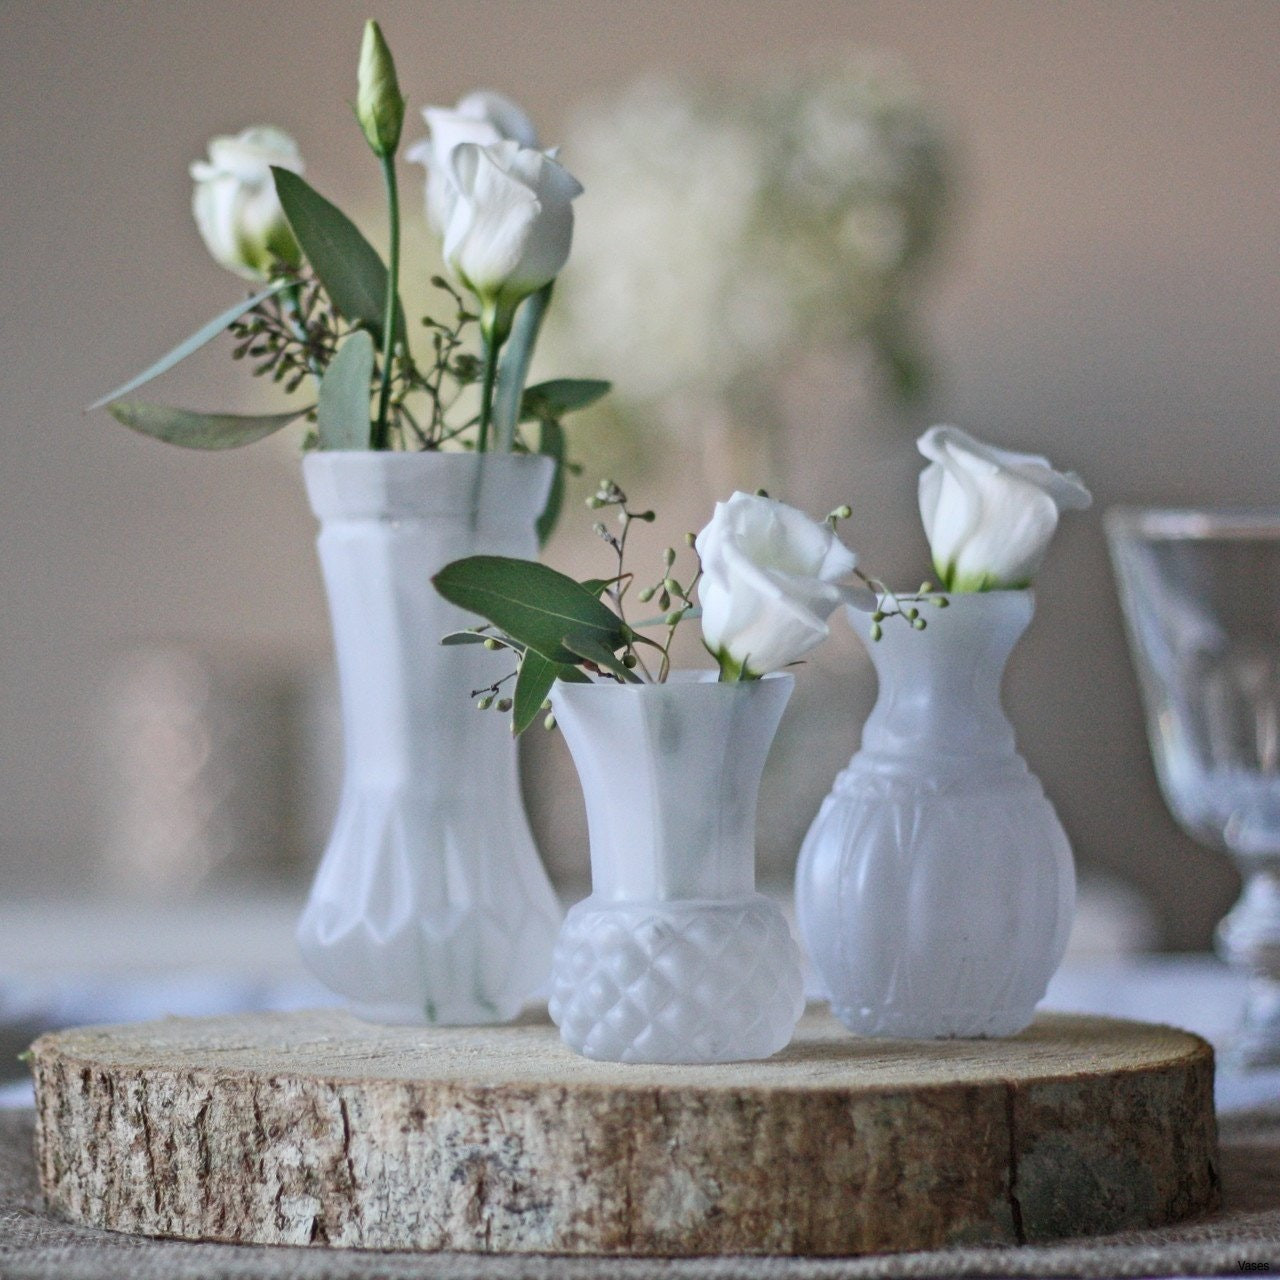 handmade vase ideas of sophisticated features flower photo contest 2015 pets nature wallpaper intended for download image